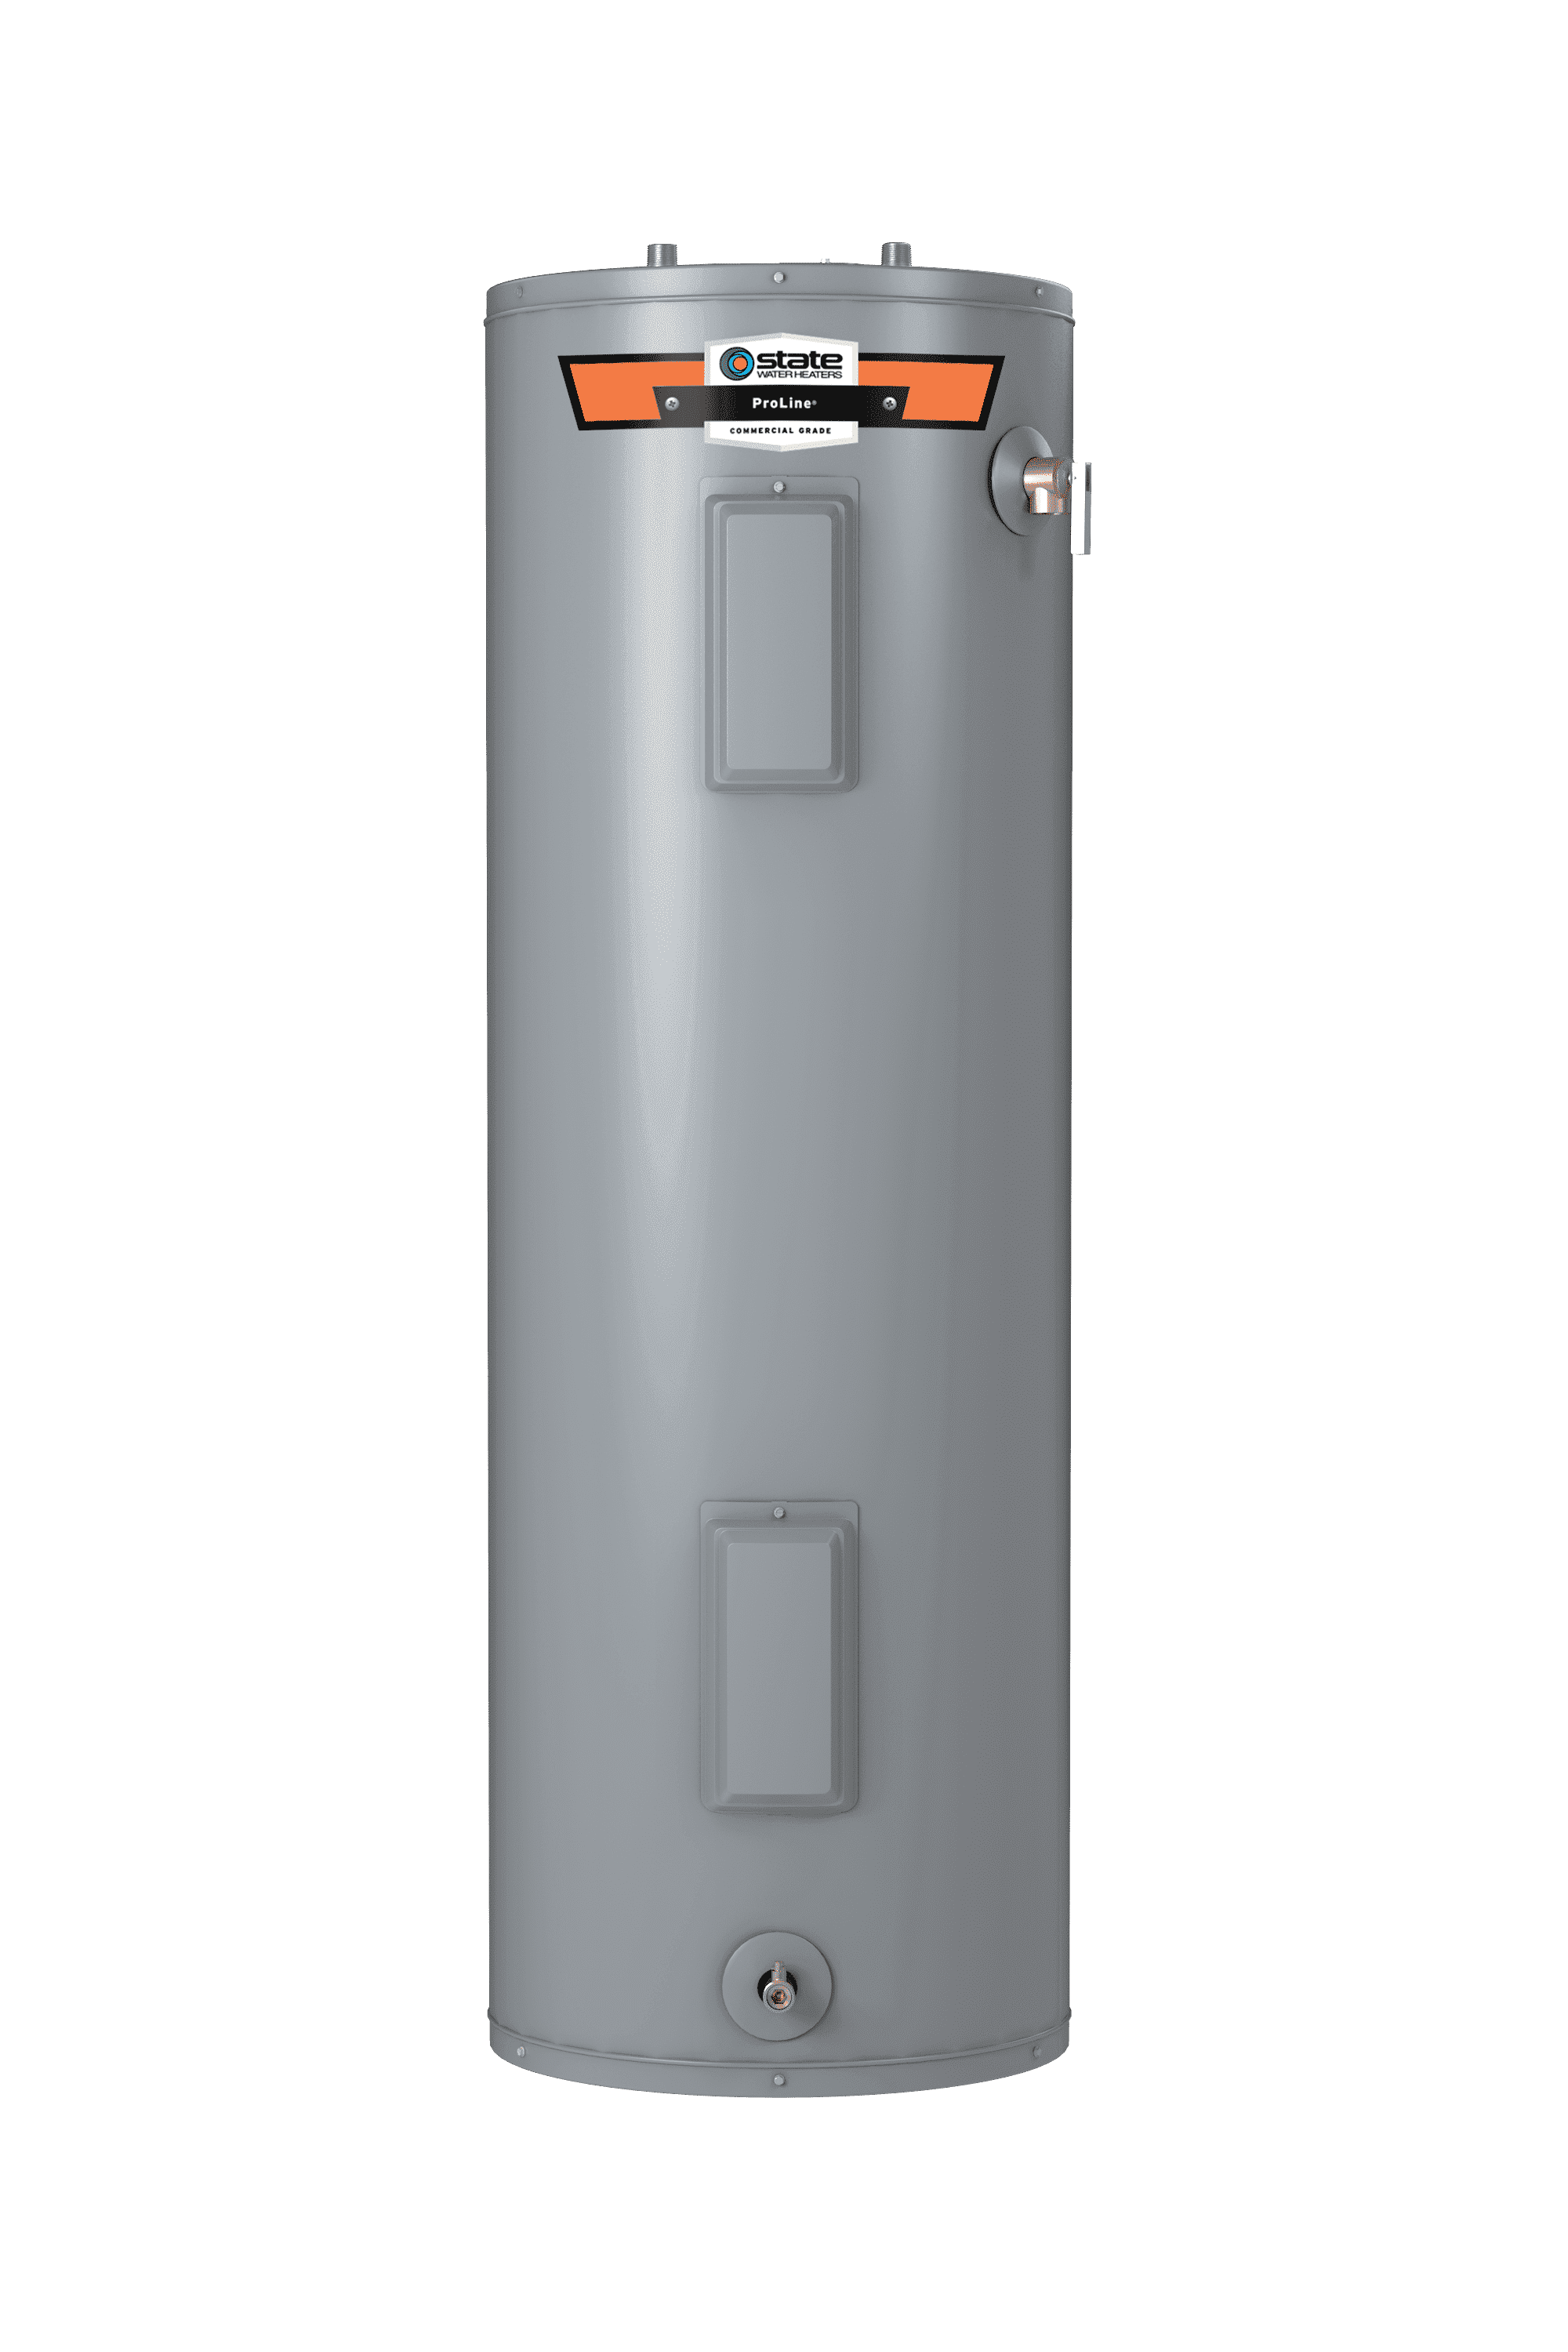 Proline Standard Electric Water Heater